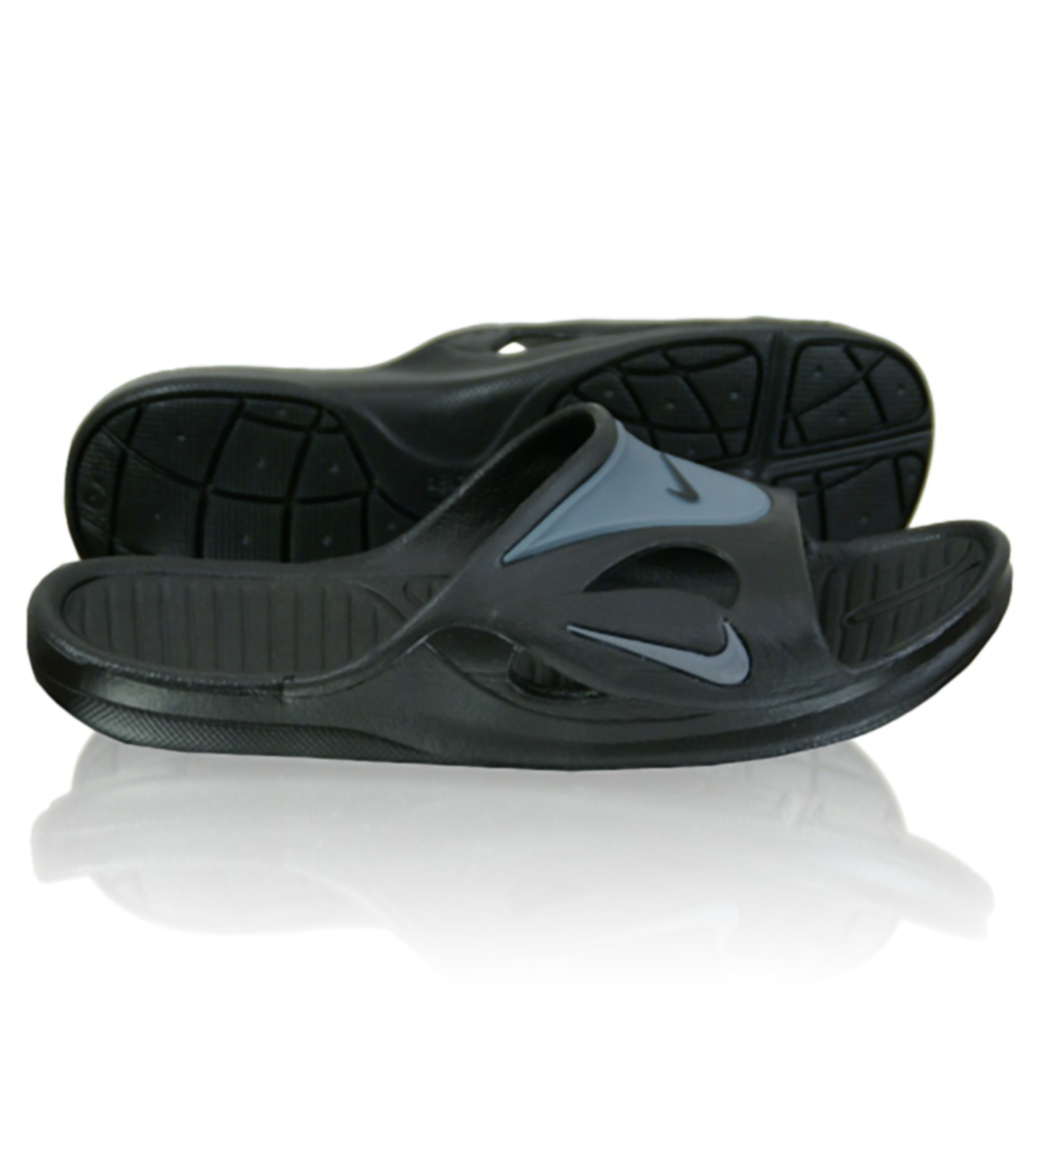 Nike Swim Men's First String Slide Sandals. View all colors